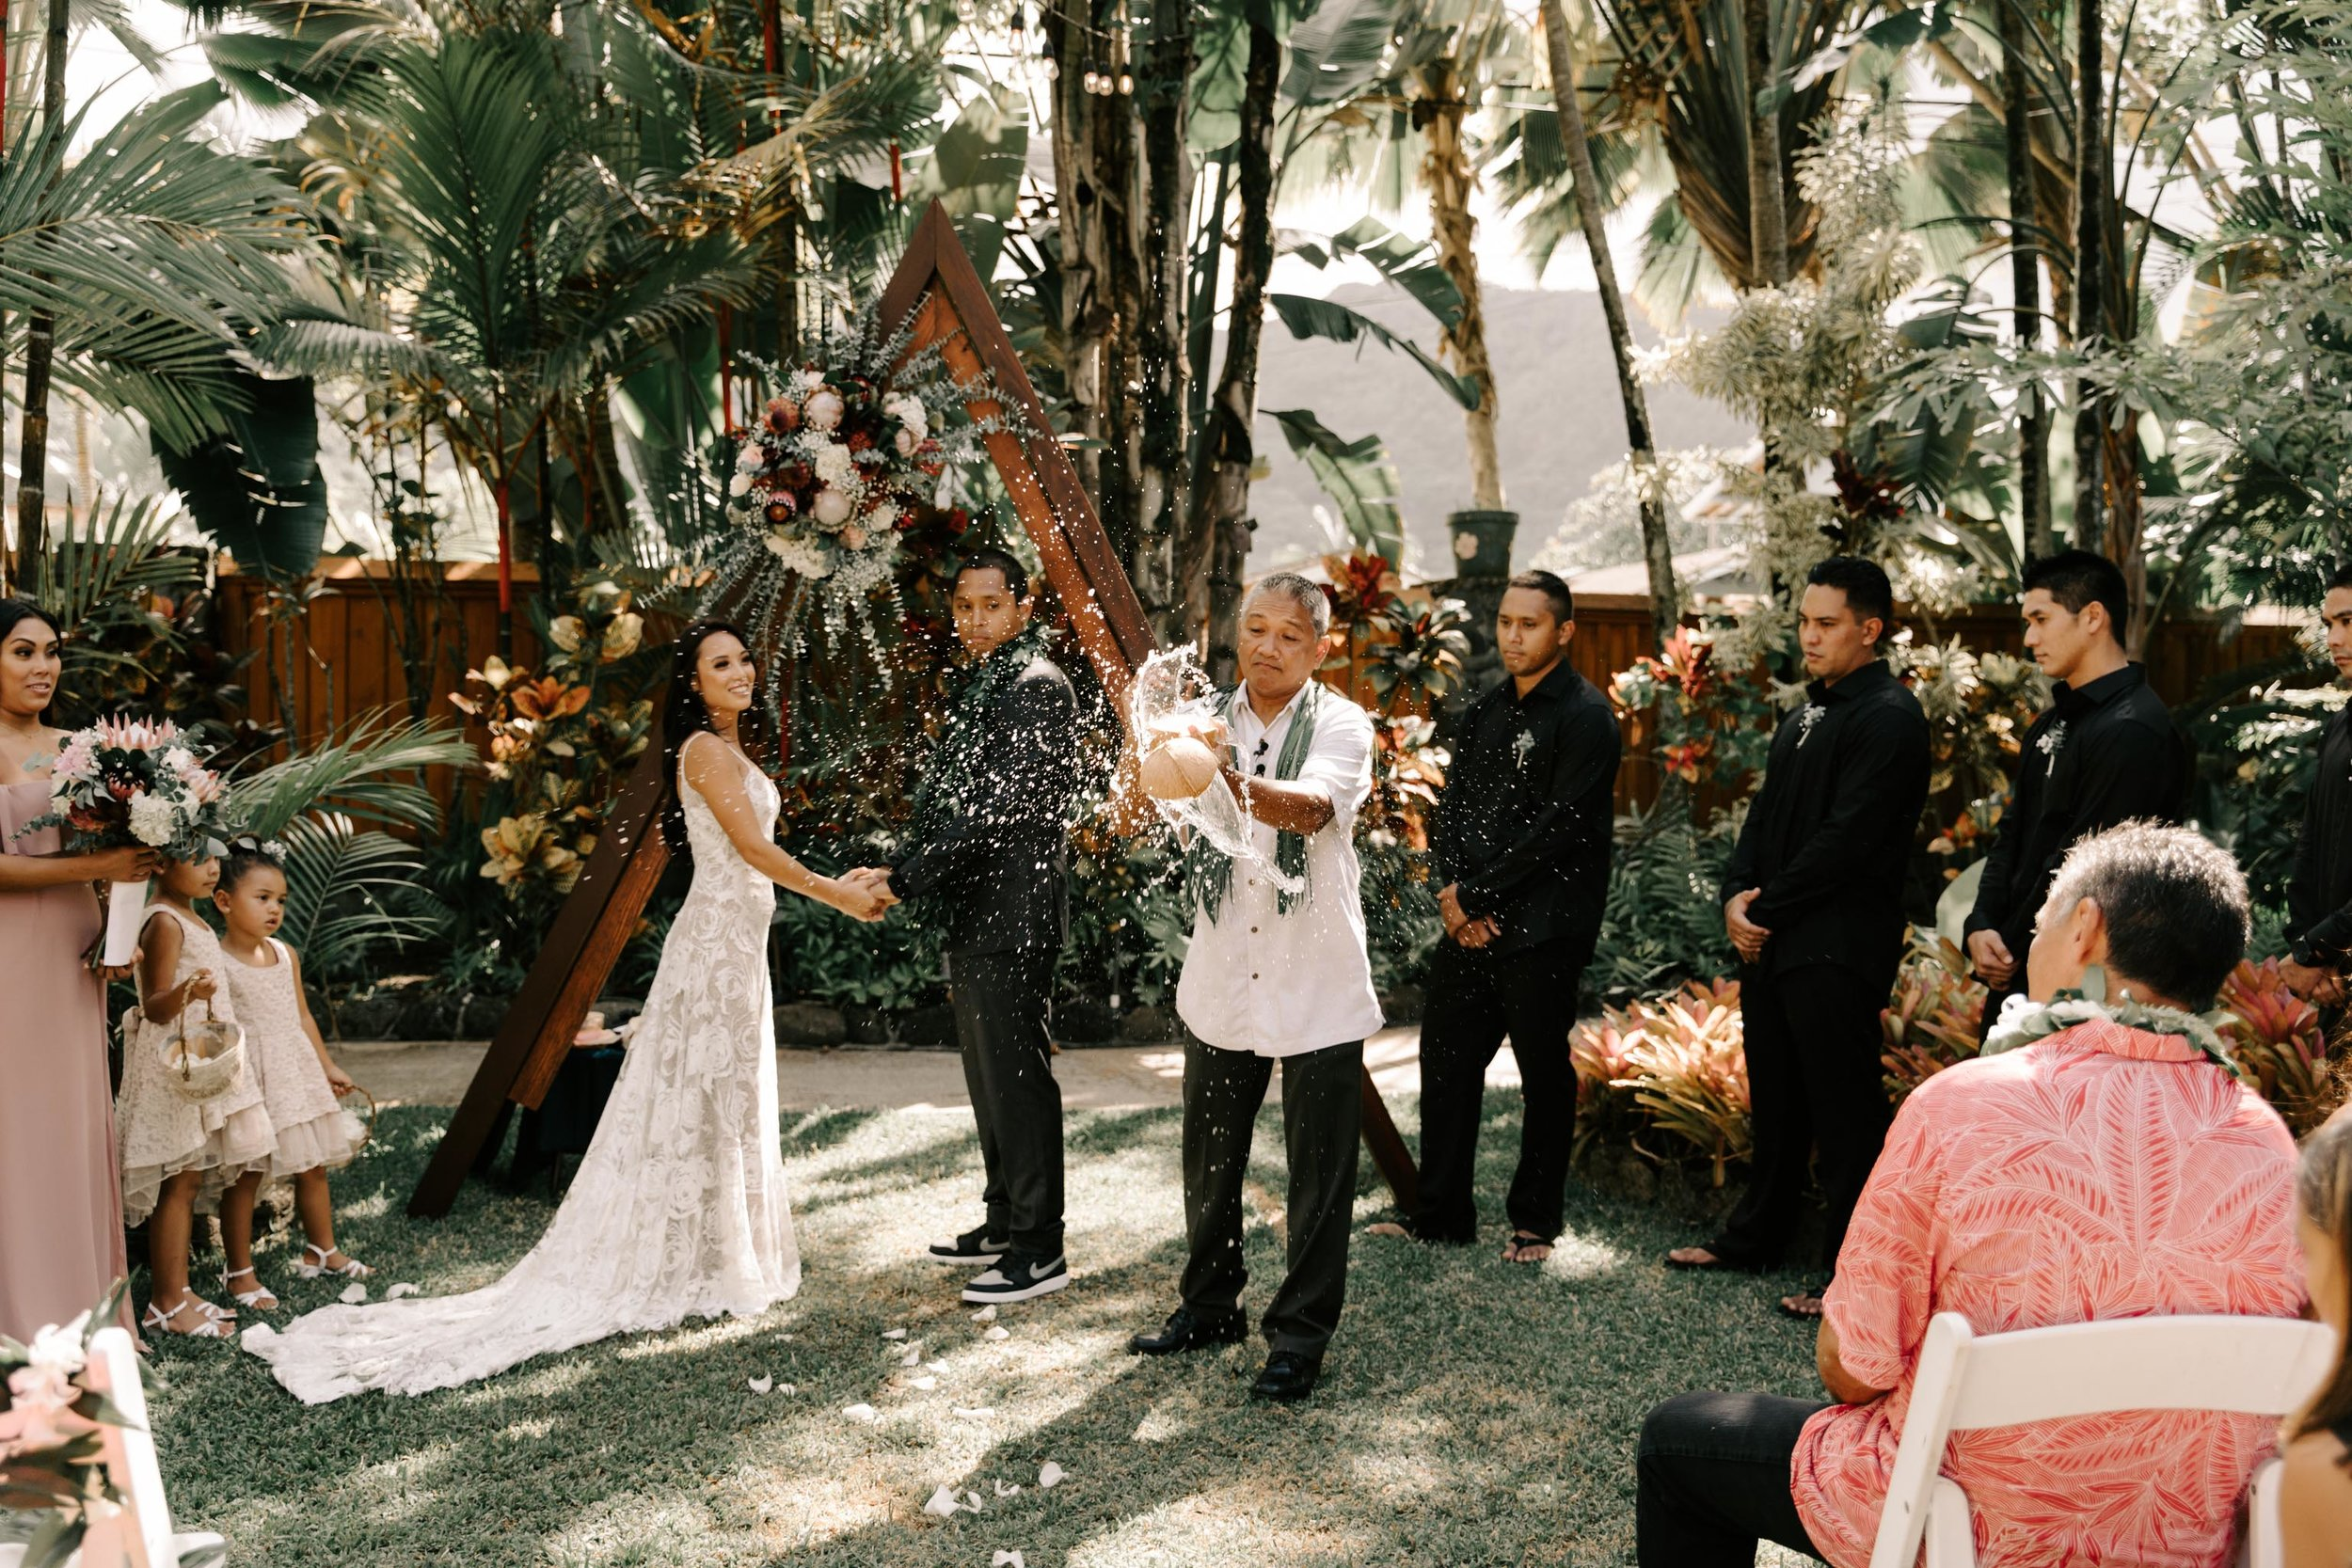 Cracking open a coconut during the wedding ceremony - Hale Koa Phineas Estate Wedding By Hawaii Wedding Photographer Desiree Leilani